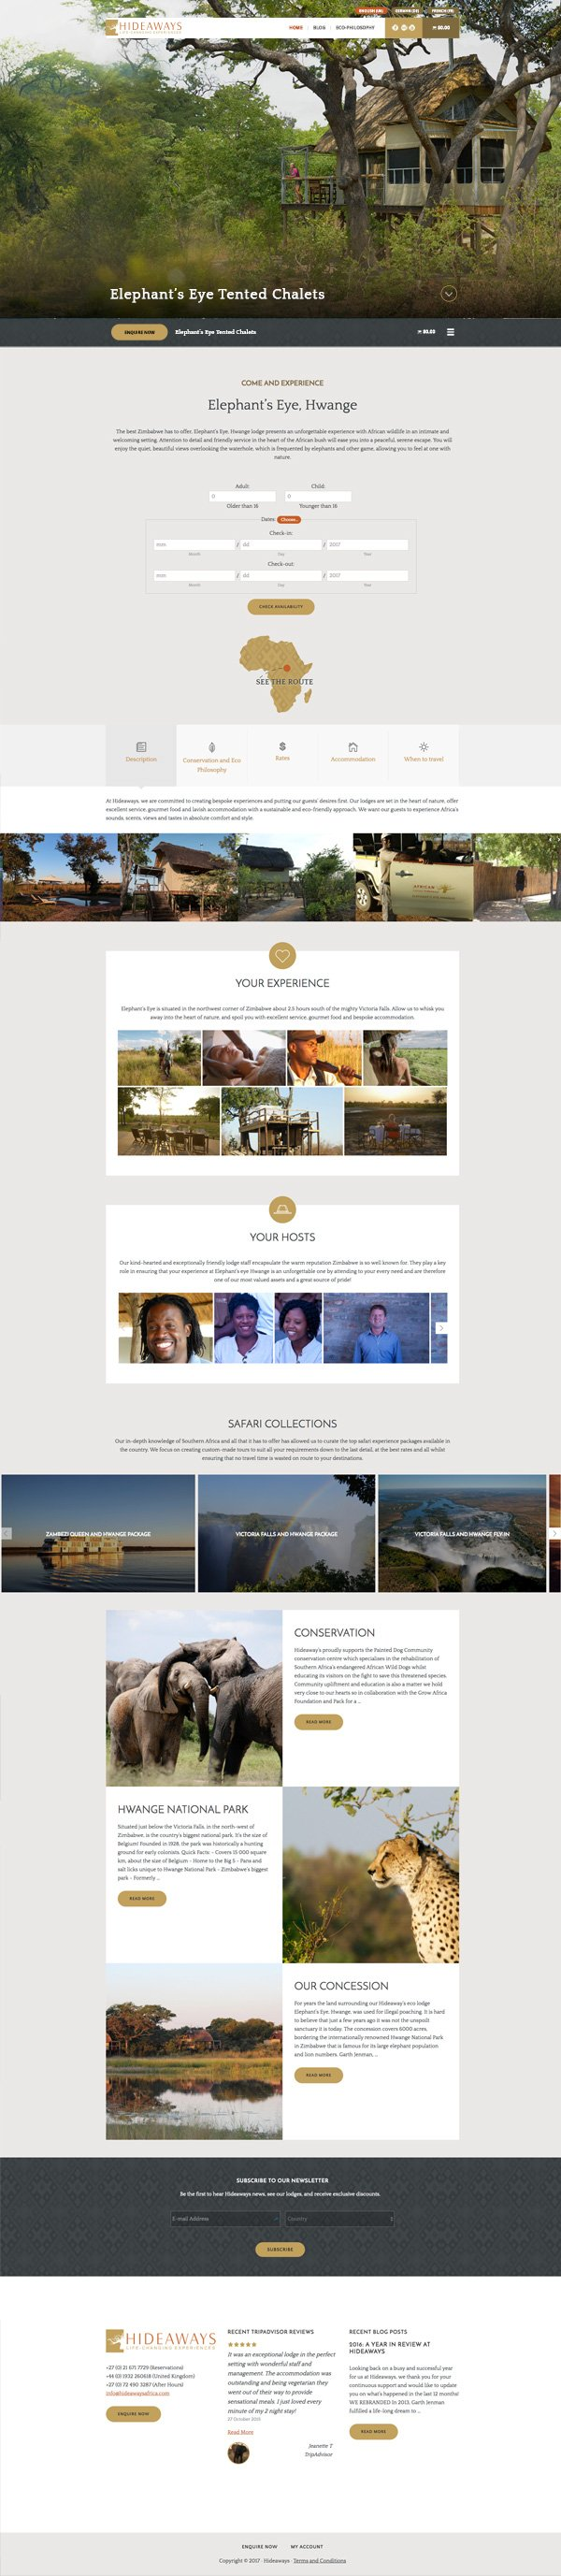 Hideaways Africa Website Redesign 2